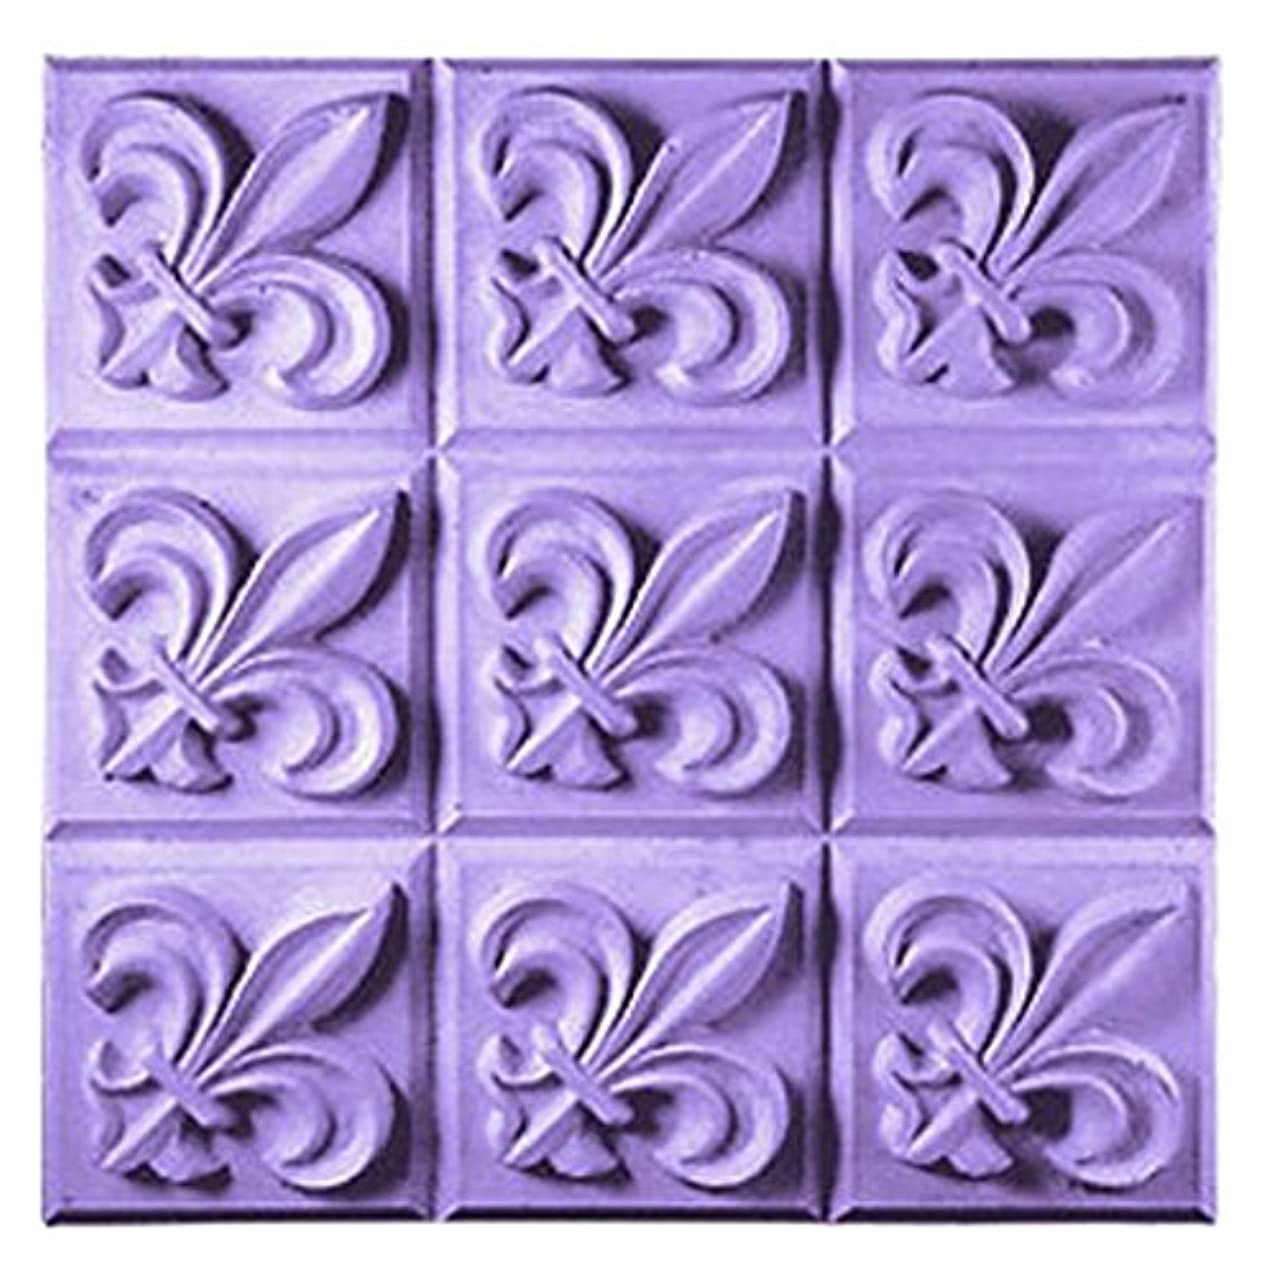 CybrTrayd Fleur de Lis Mold in Sealed Poly Bag, with Richly Illustrated 44-Page Soap Molder's Guide